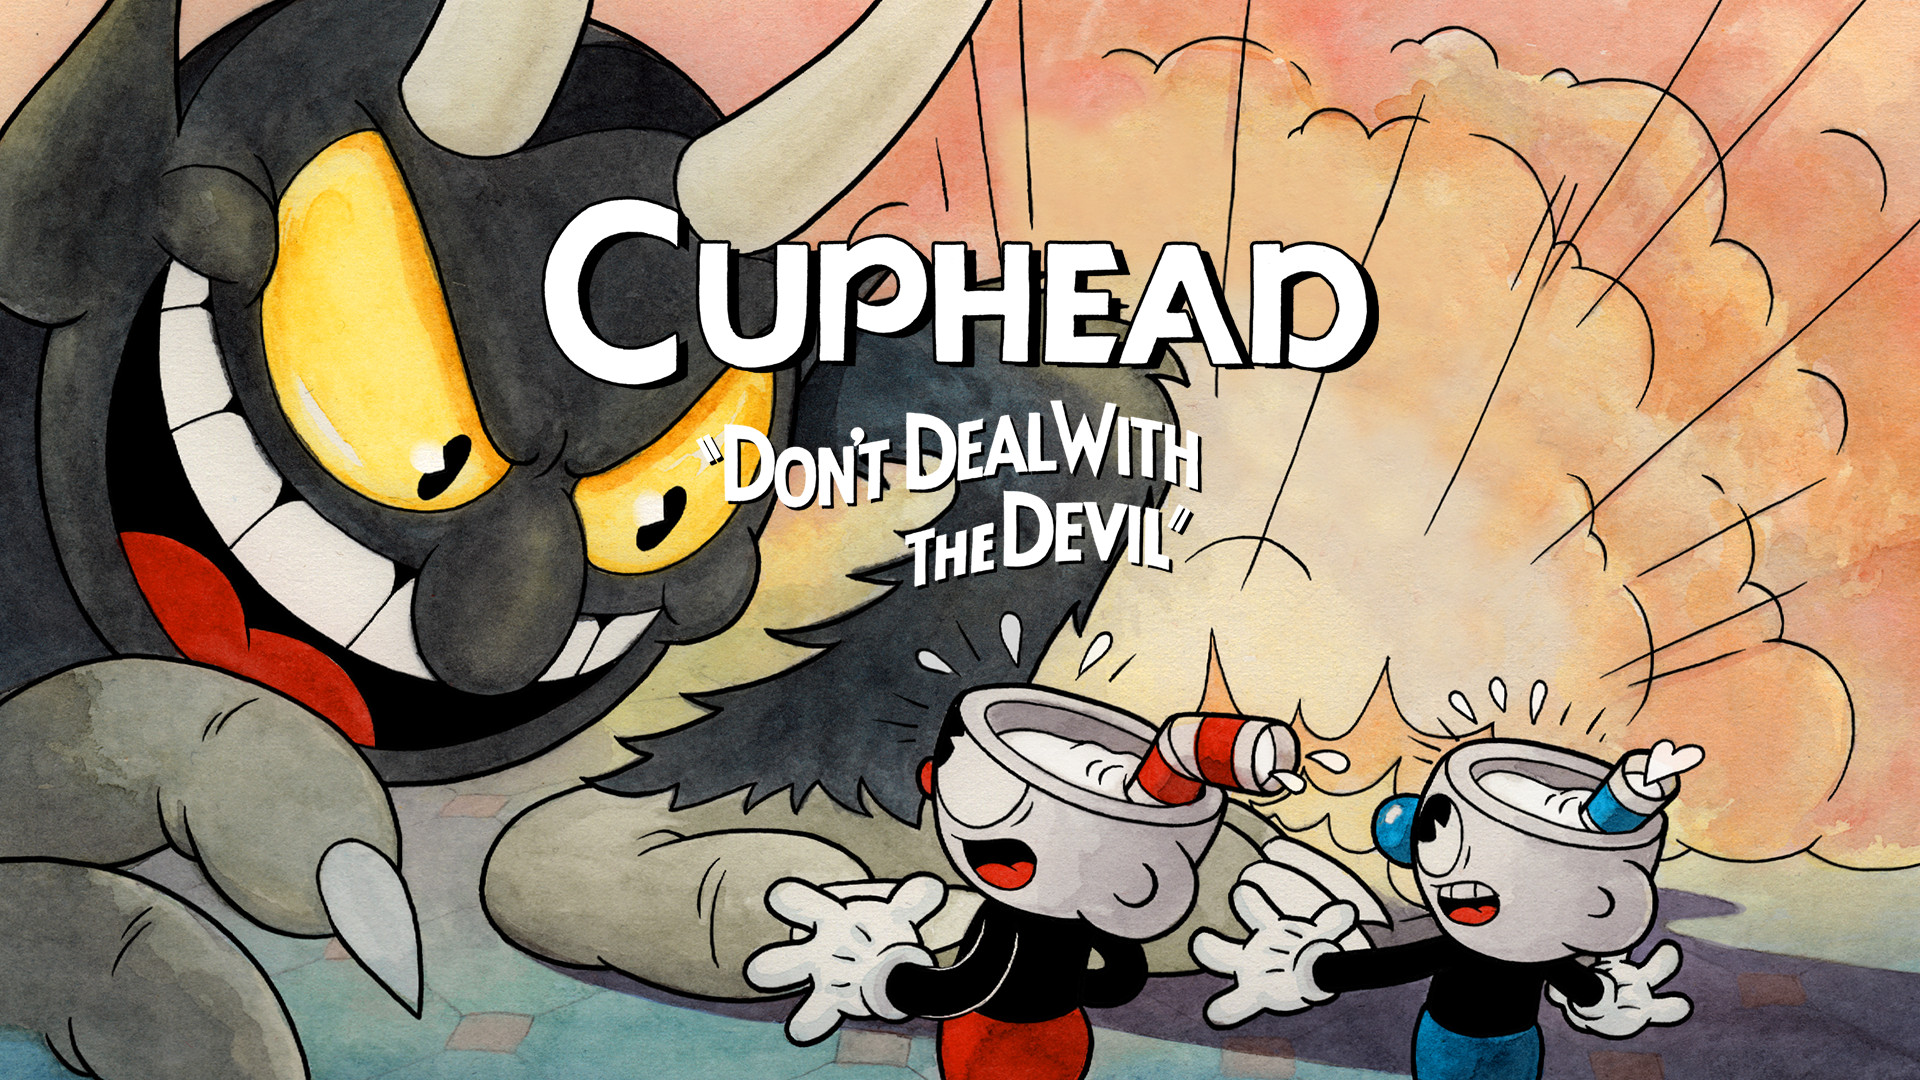 [Level 1] Cuphead Steam Account